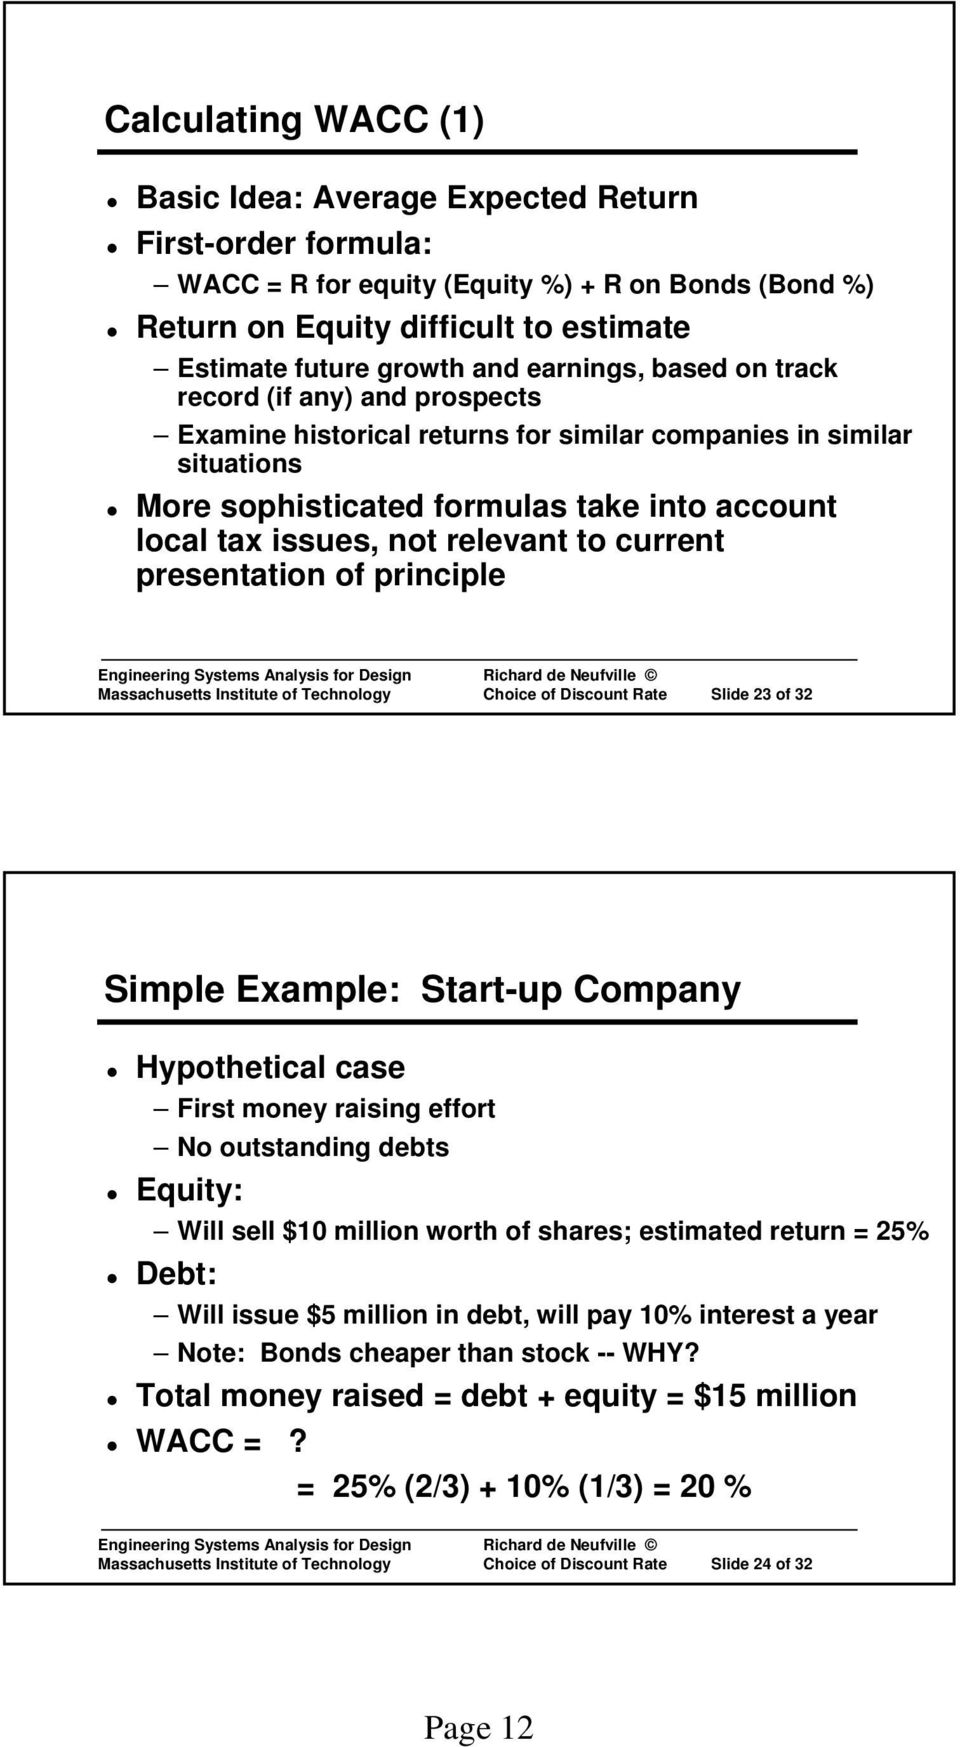 relevant to current presentation of principle Massachusetts Institute of Technology Choice of Discount Rate Slide 23 of 32 Simple Example: Start-up Company Hypothetical case First money raising